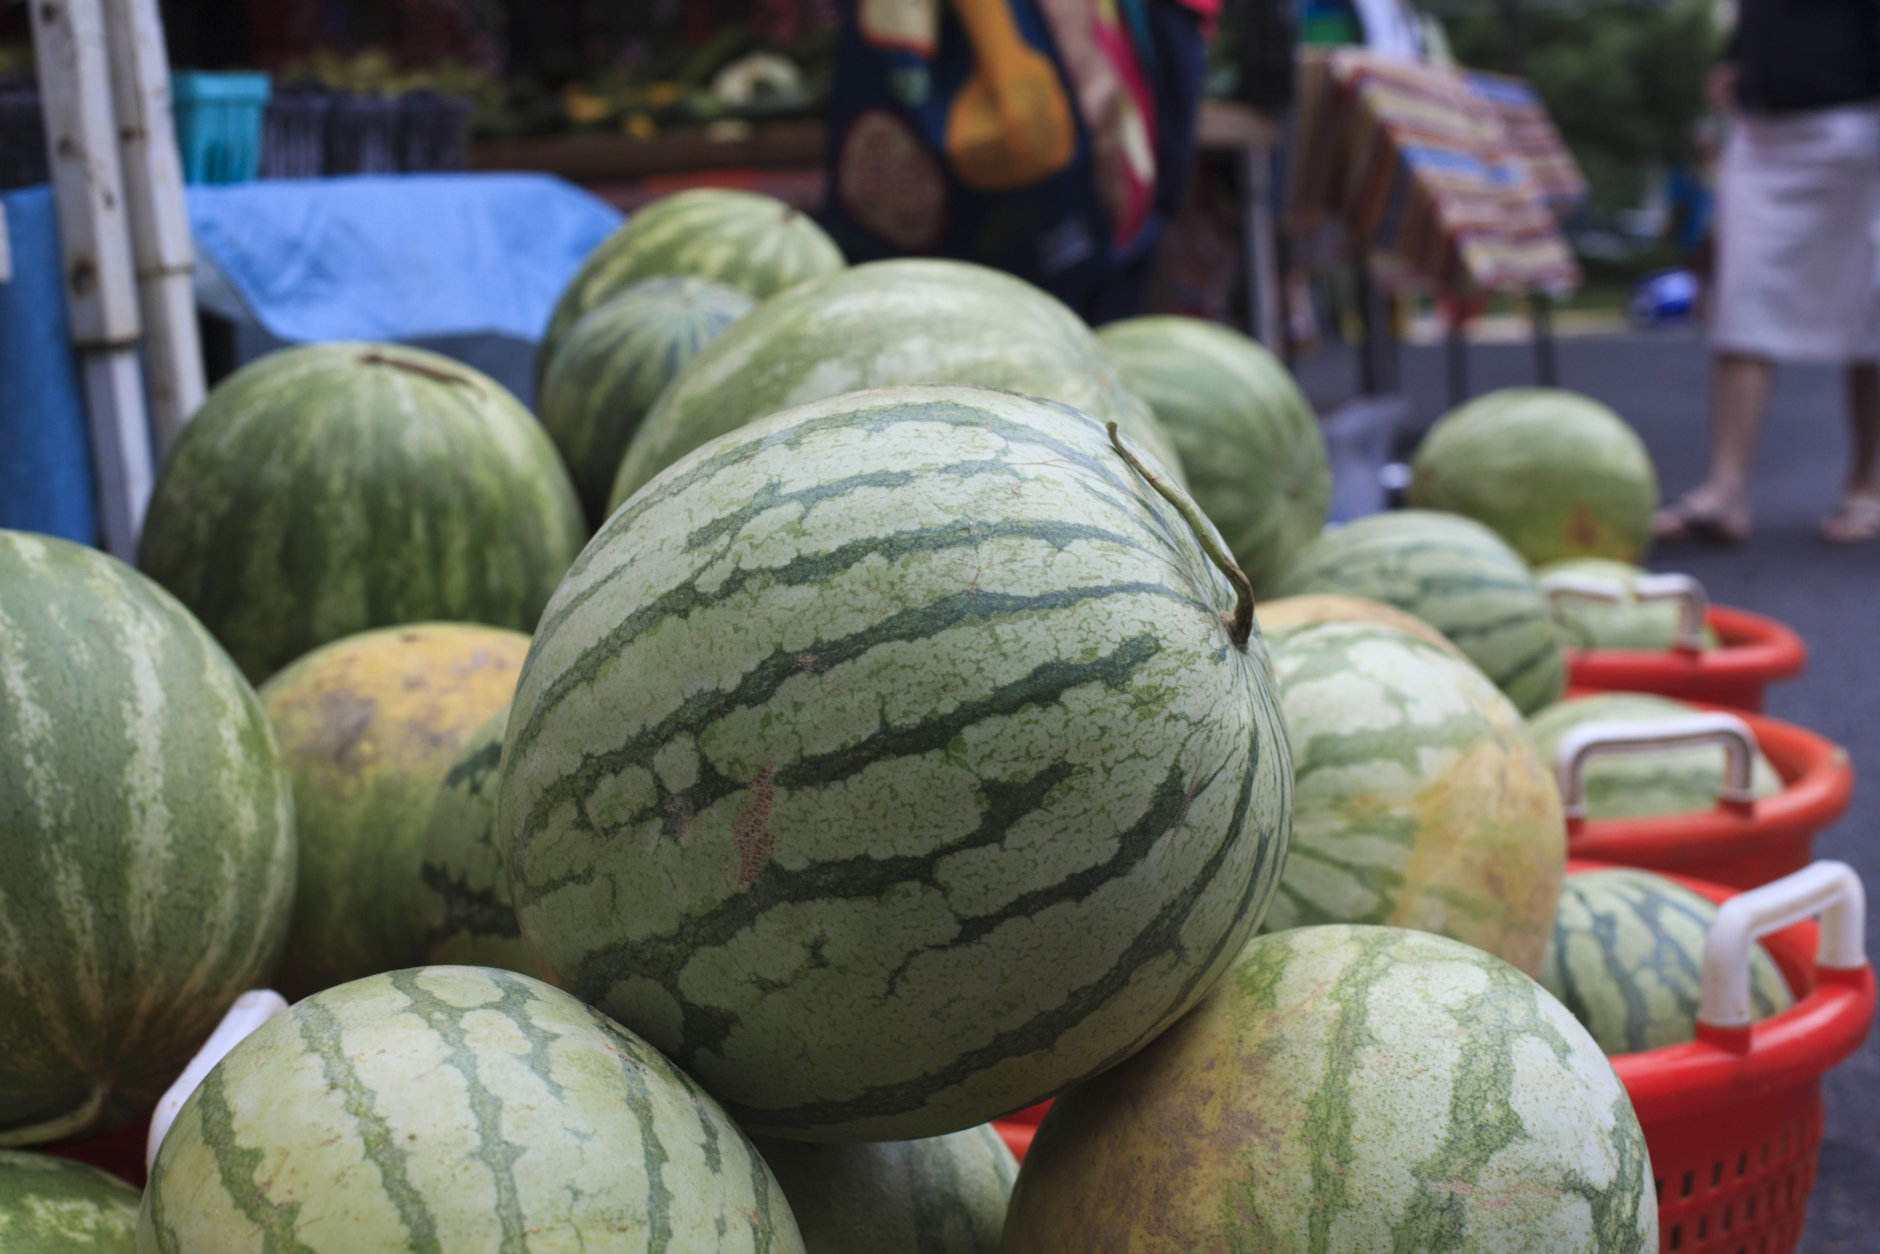 Watermelons are displayed for sale with summer fruits and vegetables at a farmers market in Falls Church, Va., Saturday, July 28, 2017. (AP Photo/J. Scott Applewhite)